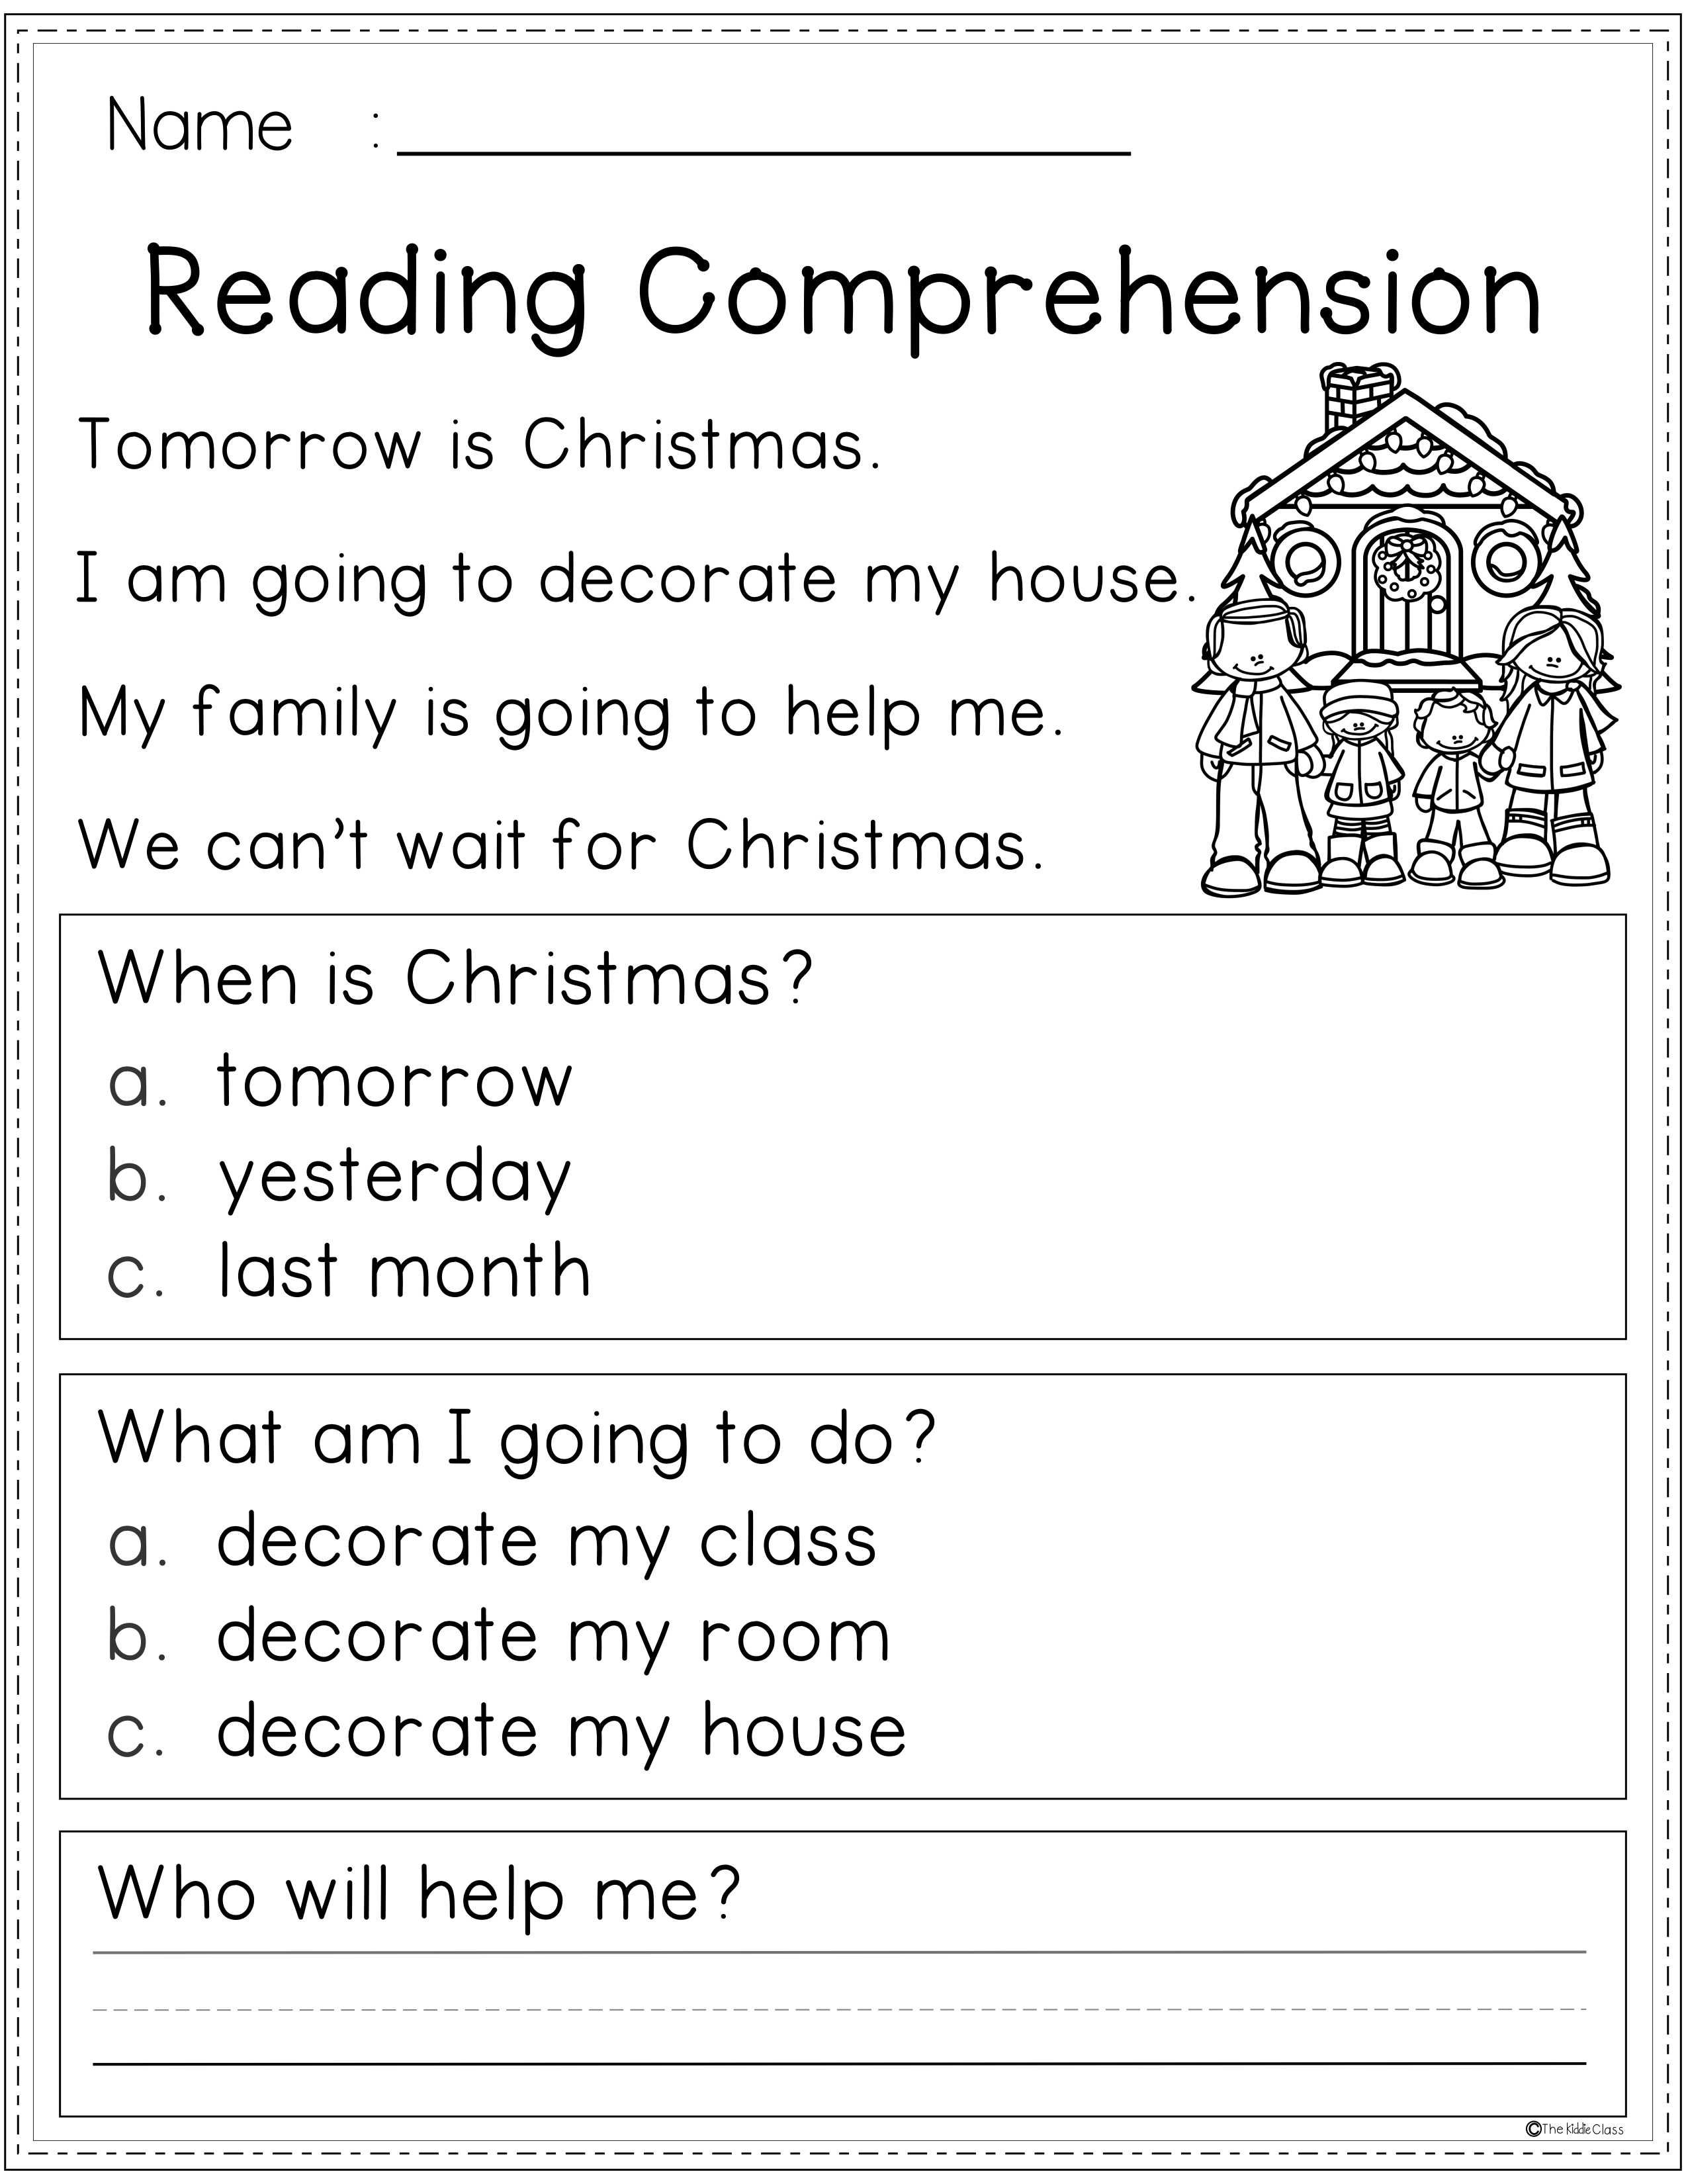 Reading Comprehension Winter Edition Reading Comprehension Comprehension 2nd Grade Reading Worksheets [ 3300 x 2551 Pixel ]